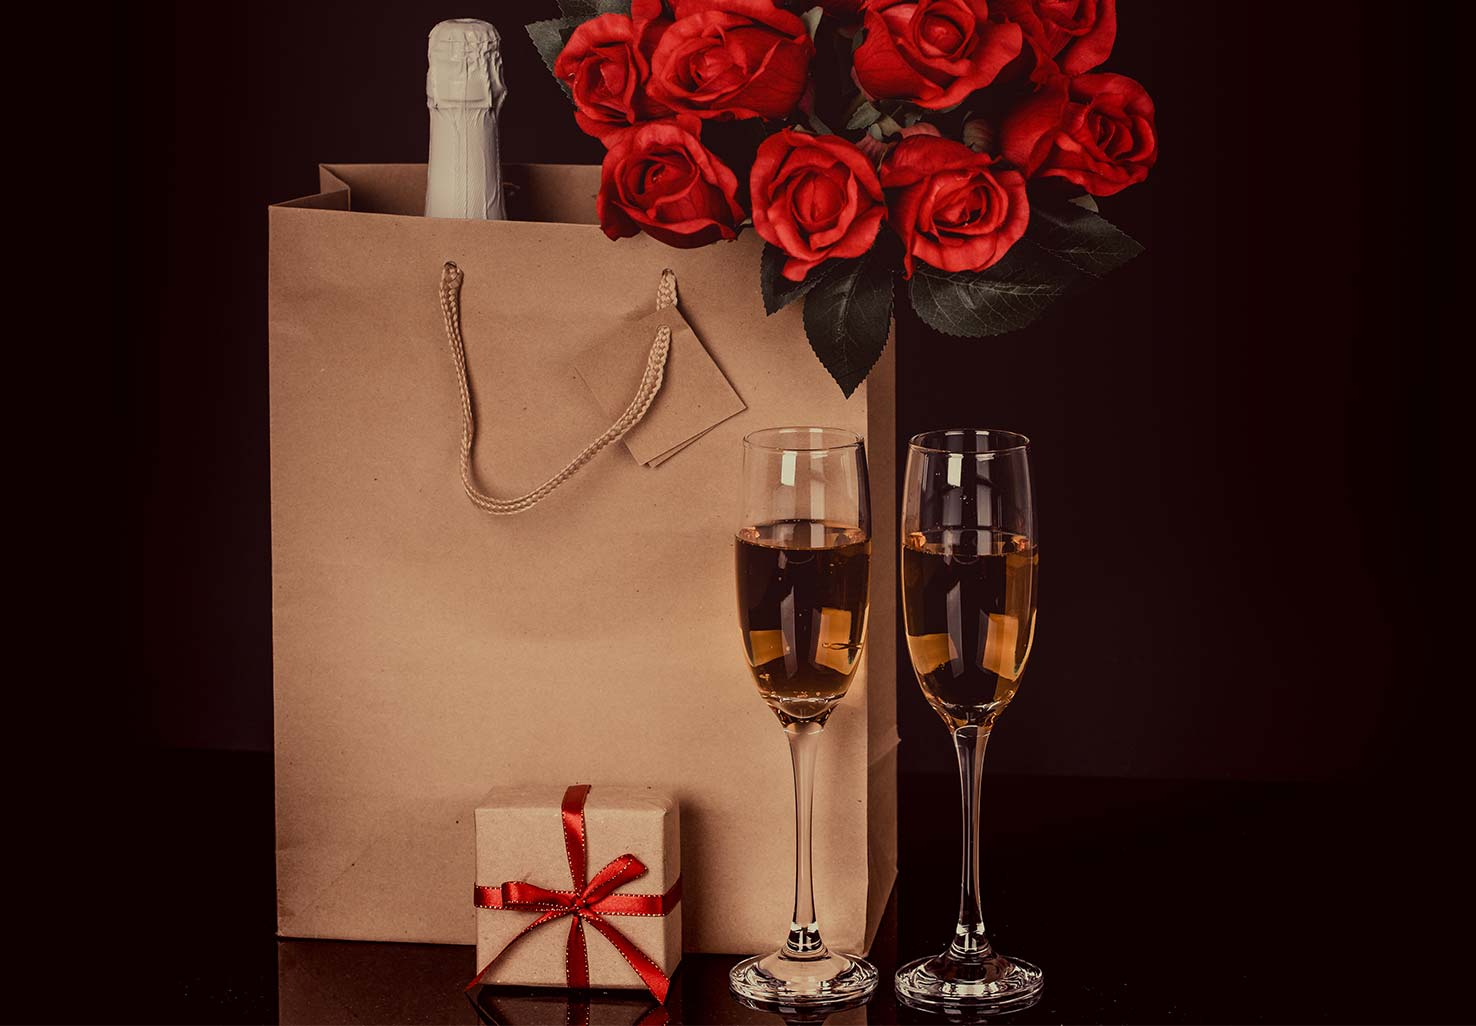 A dozen red roses, champagne and a box of chocolates